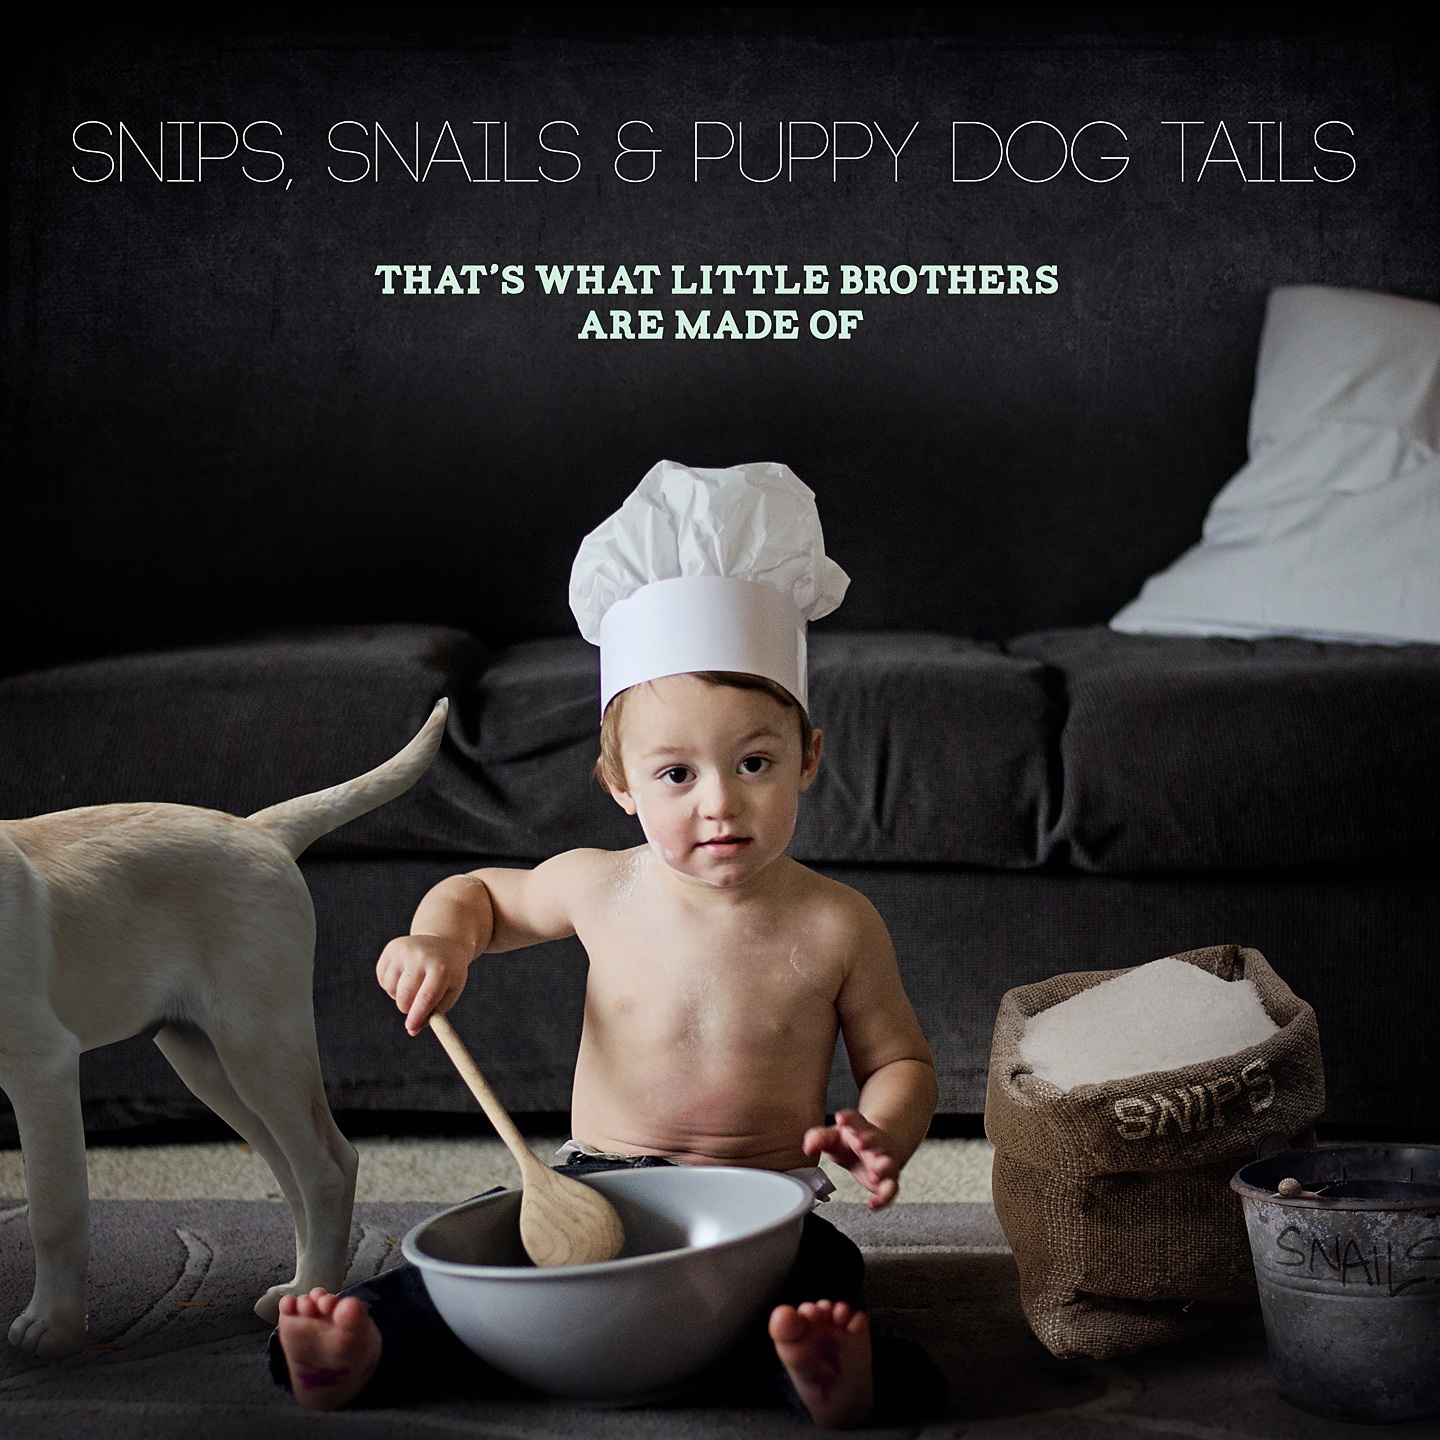 Baby gender announcement photo - snips and snails and puppy dog tails